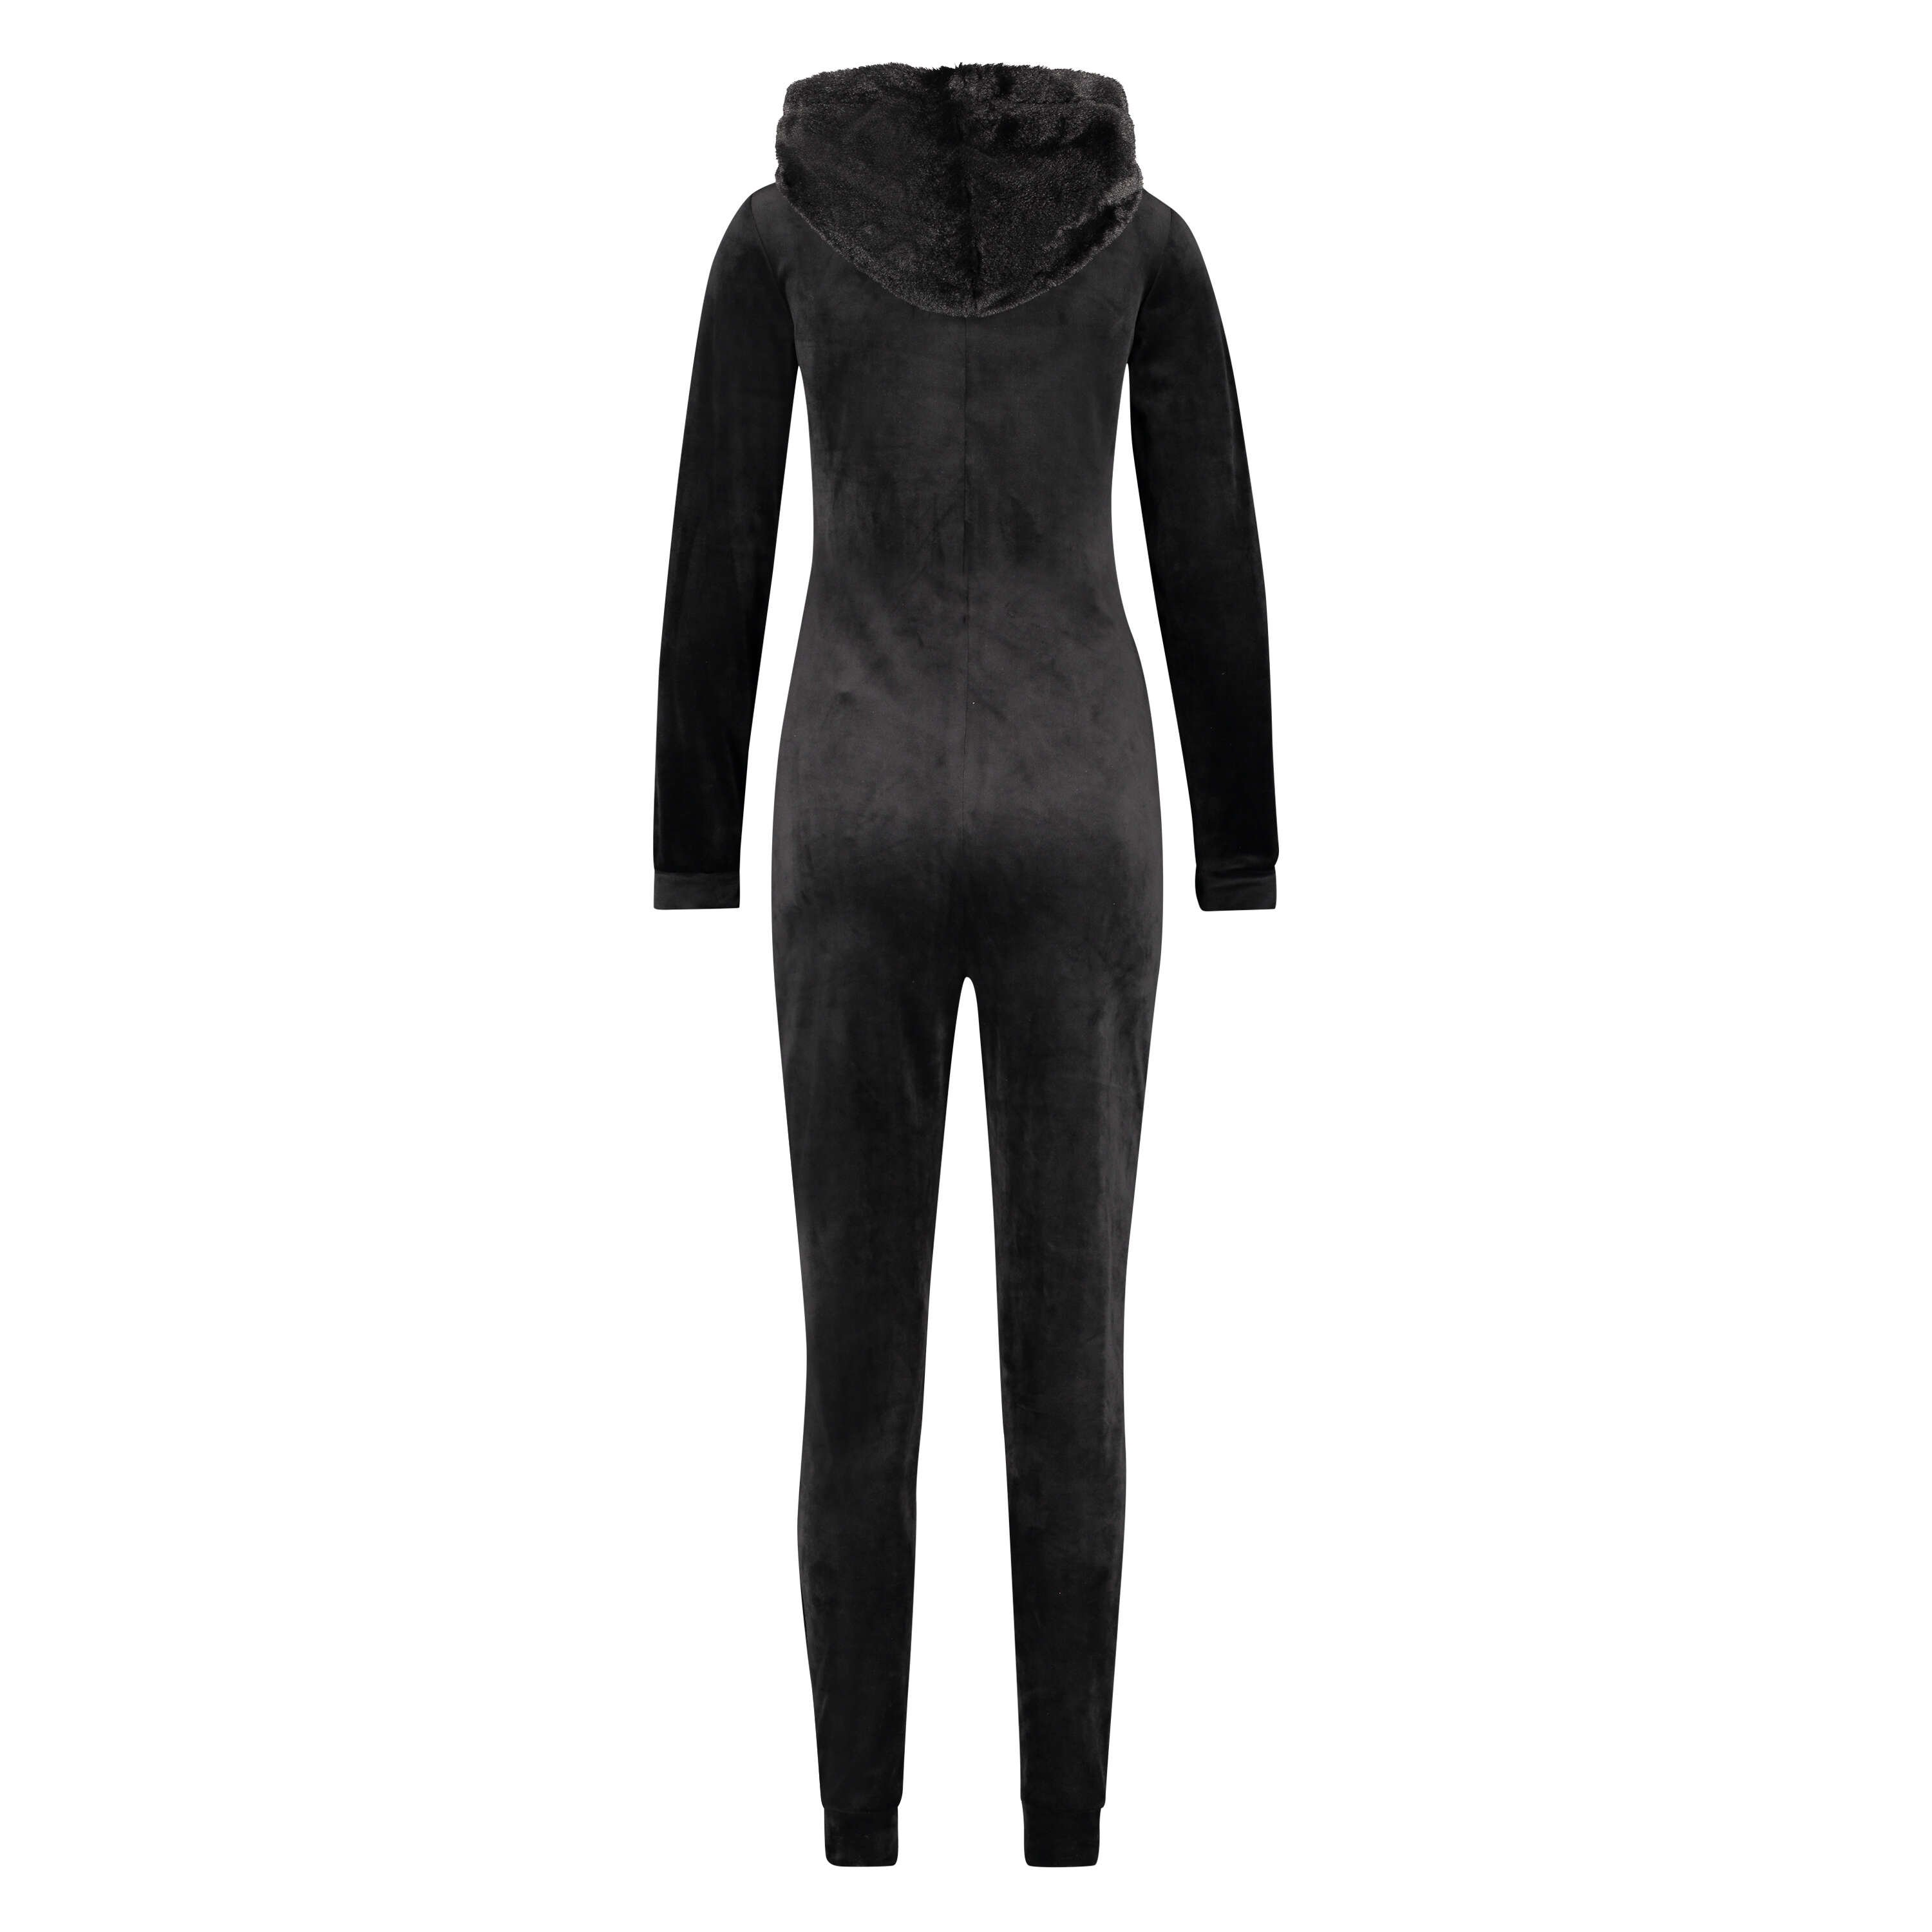 Velvet onesie, Black, main